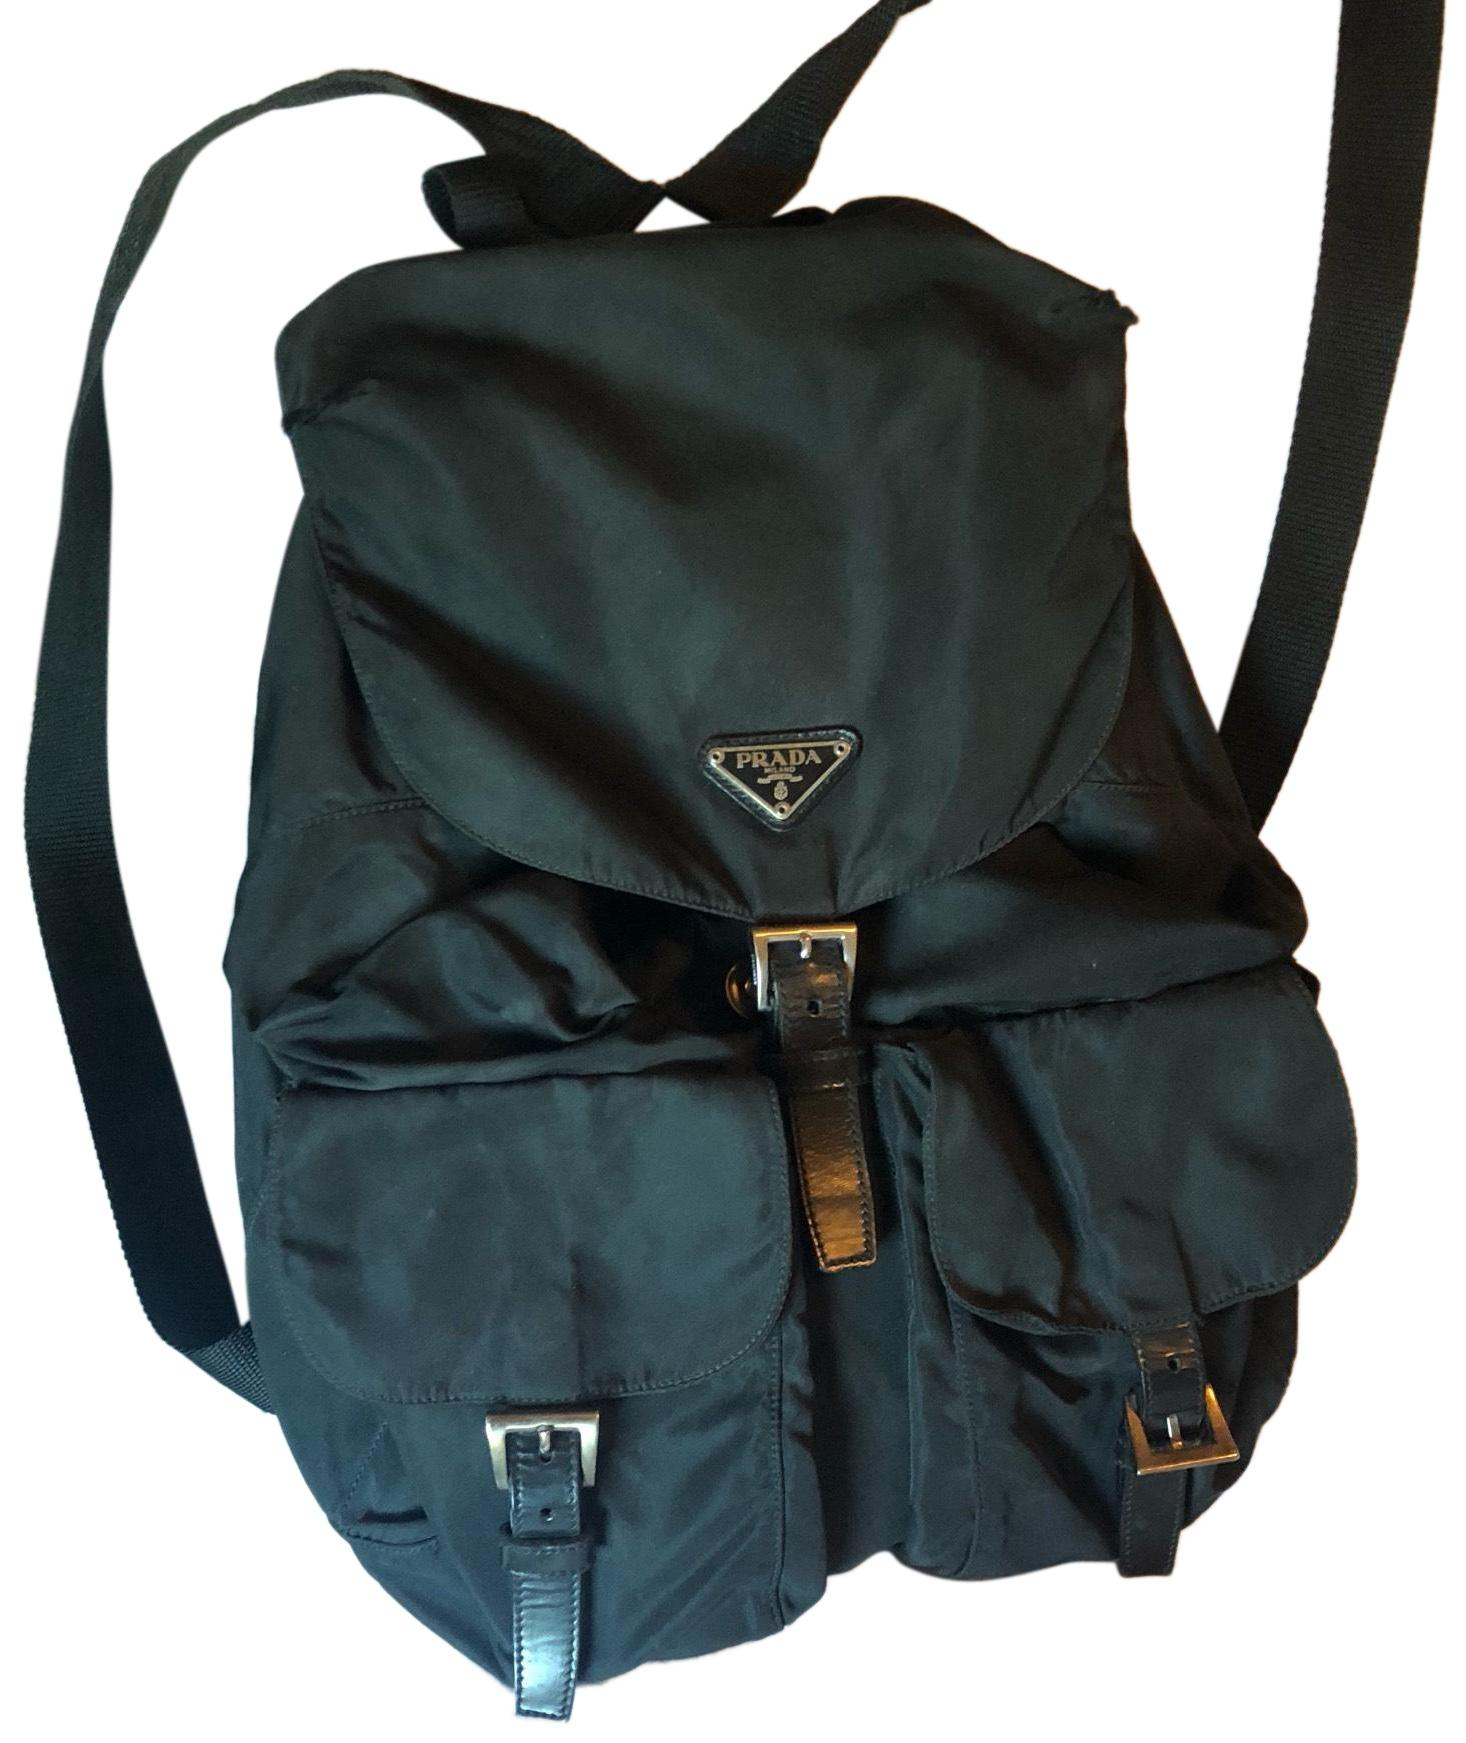 f0cad90d7147 ... cheap prada backpacks on sale up to 70 off at tradesy 8fd16 935a8